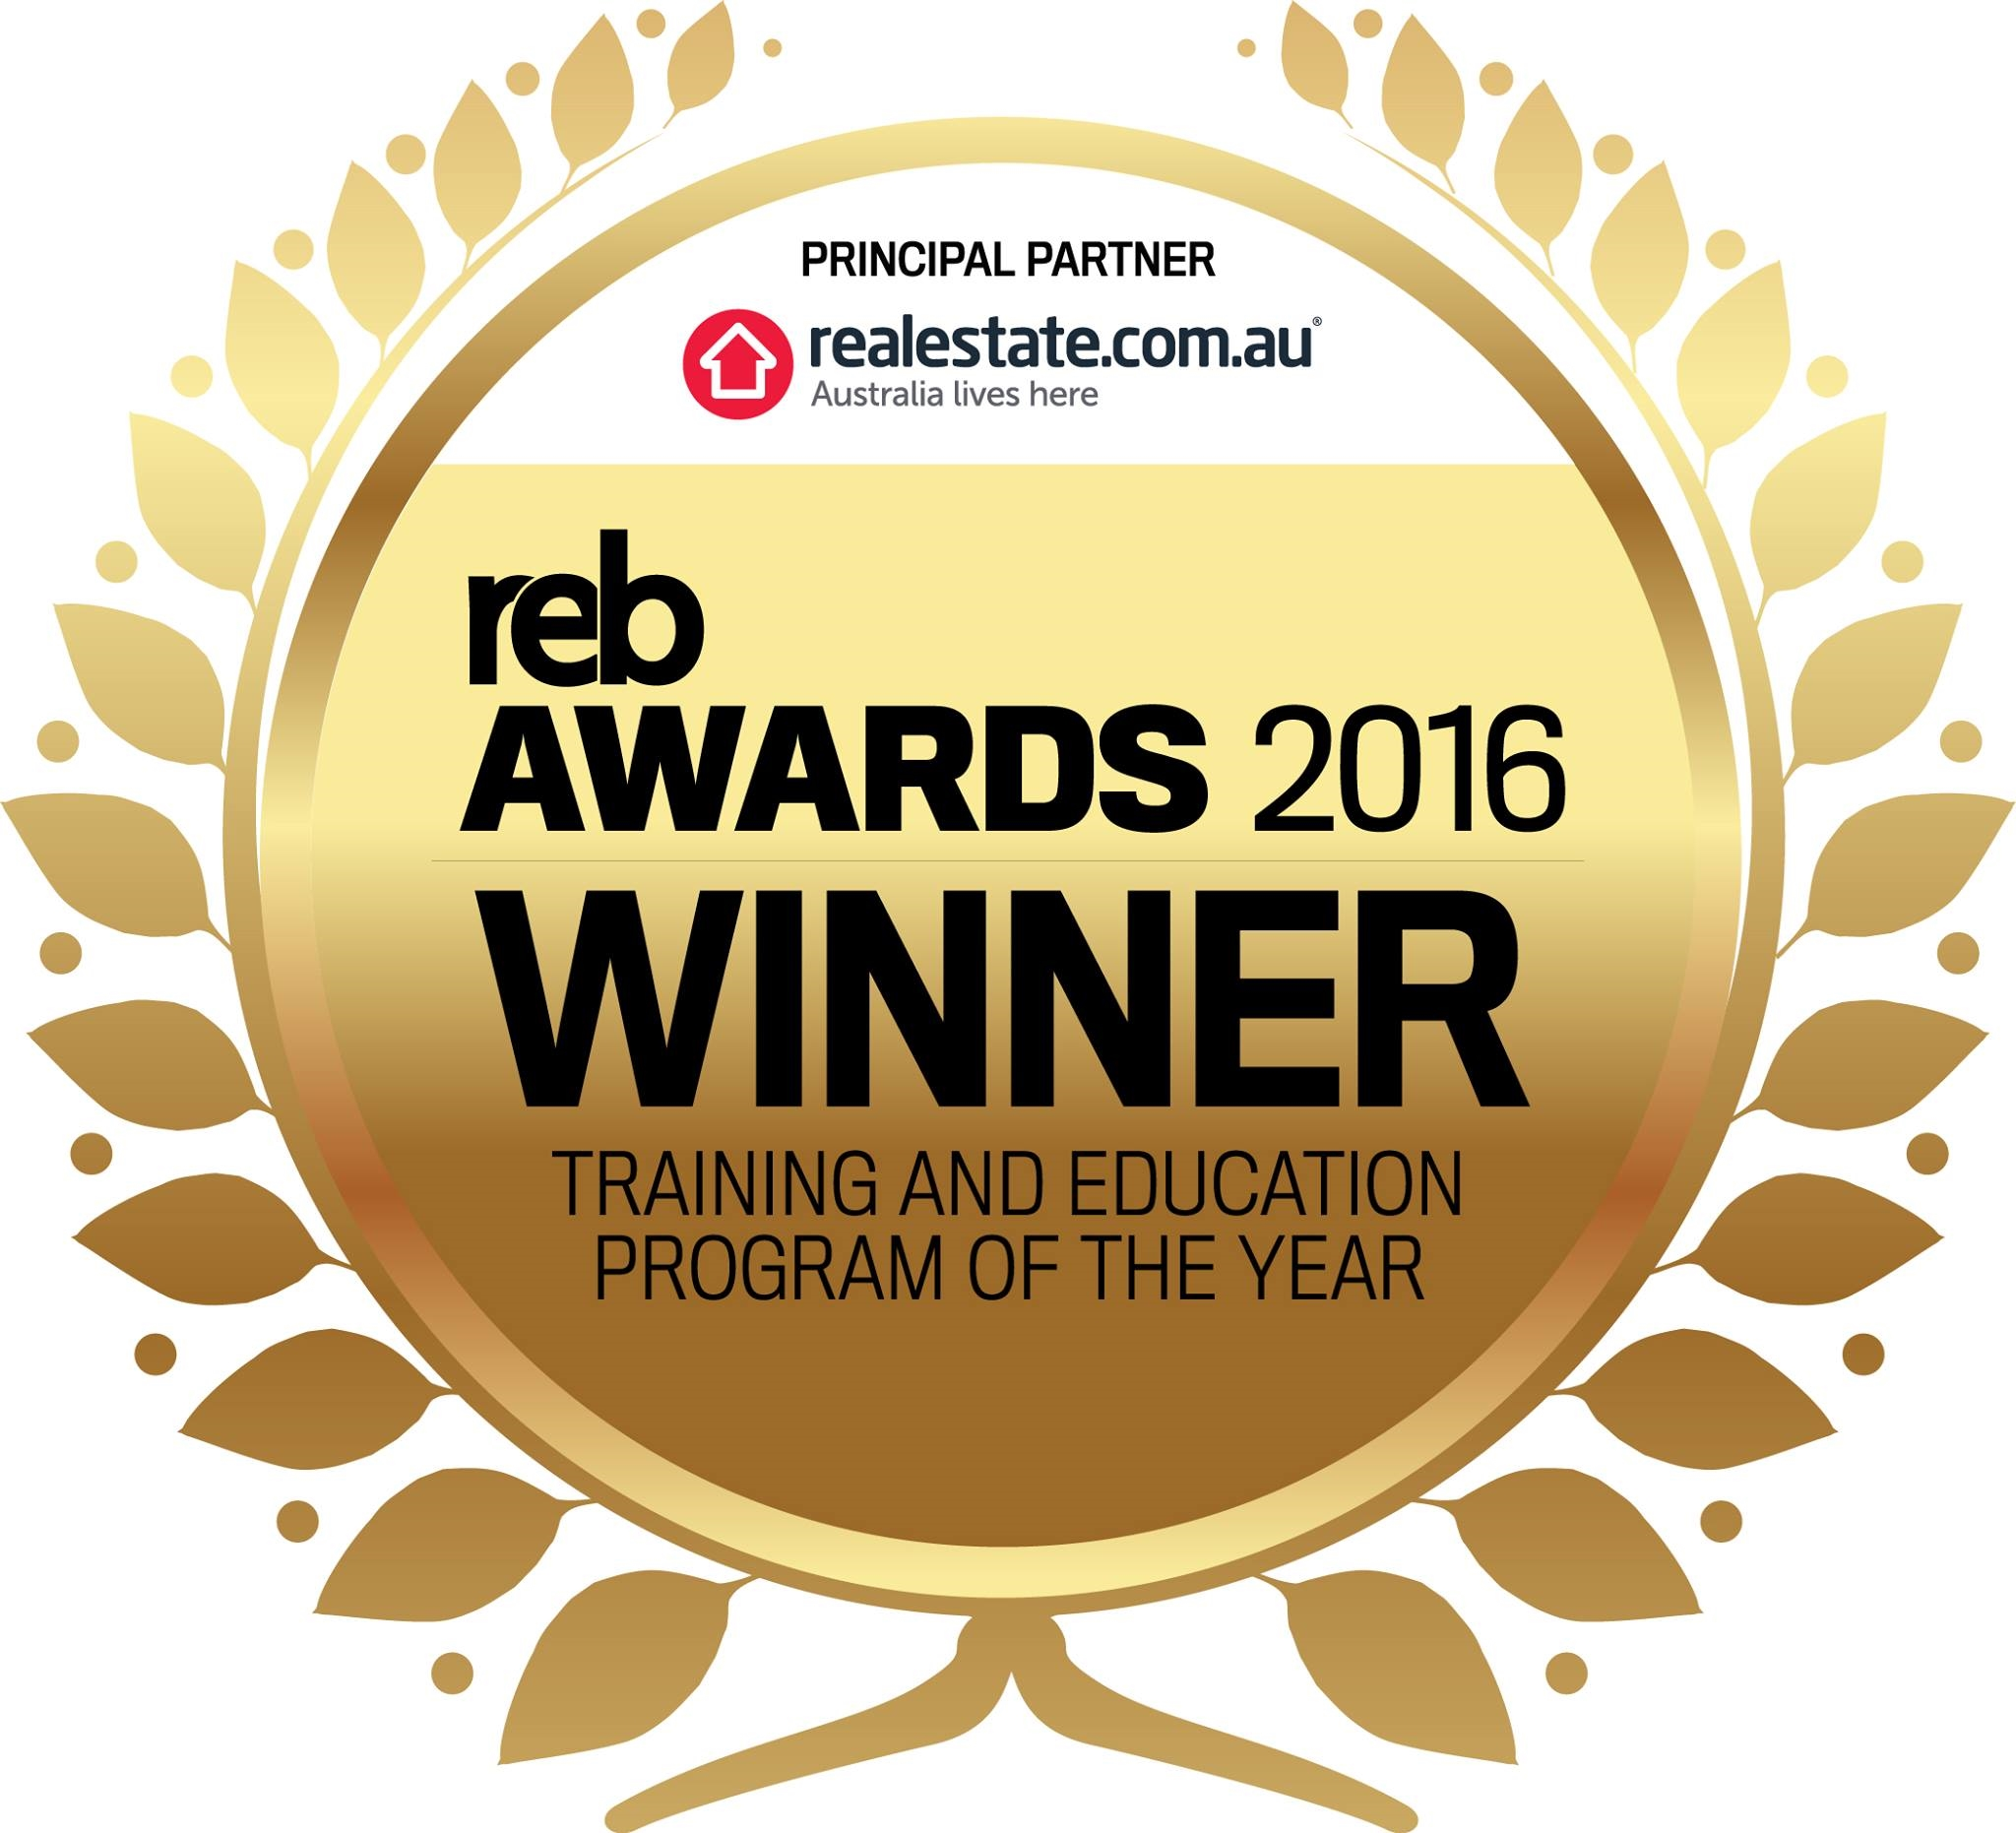 Training and Education Program of the Year!